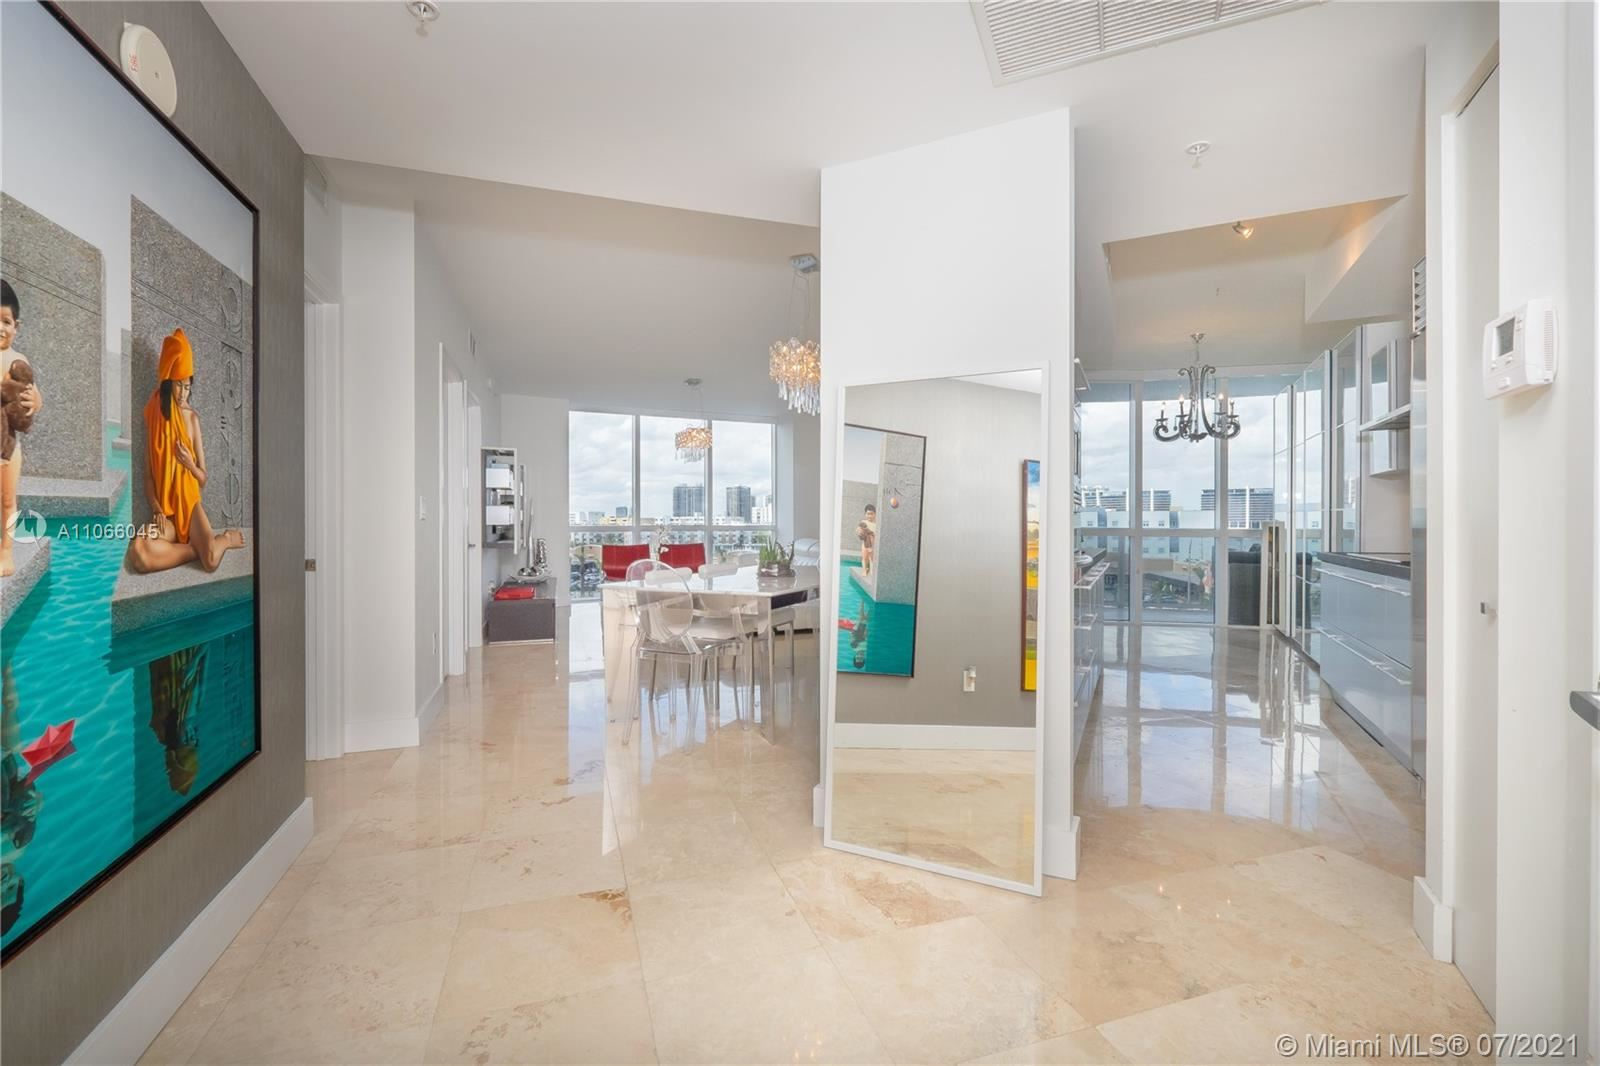 18201 Collins Ave #601A, Sunny Isles, FL 33160 - #: A11066045